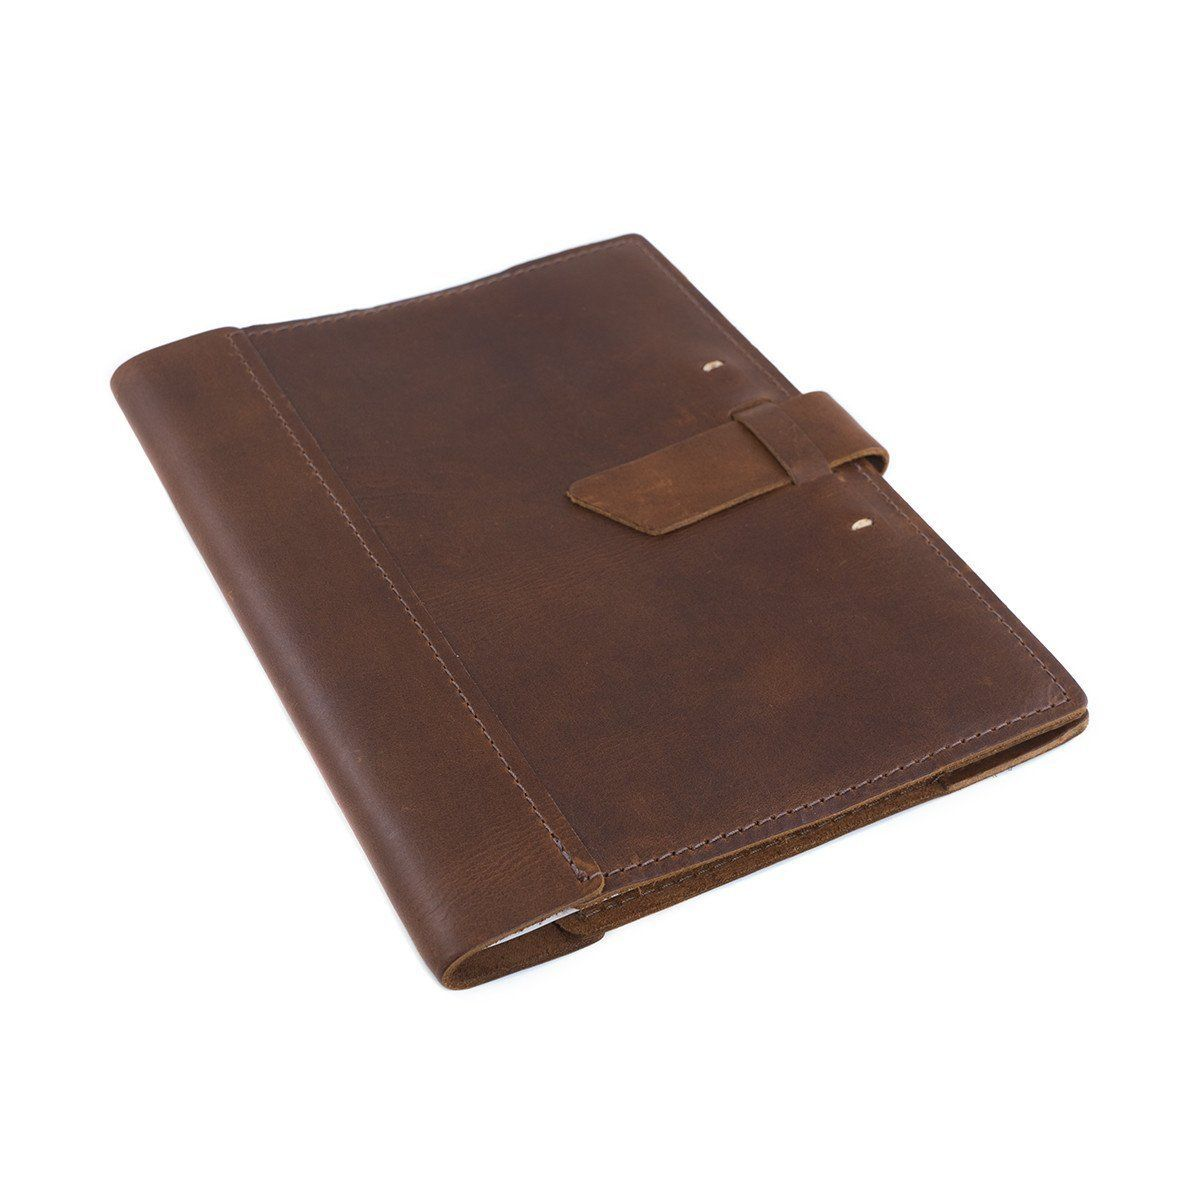 Large Leather Composition Notebook With Buckle